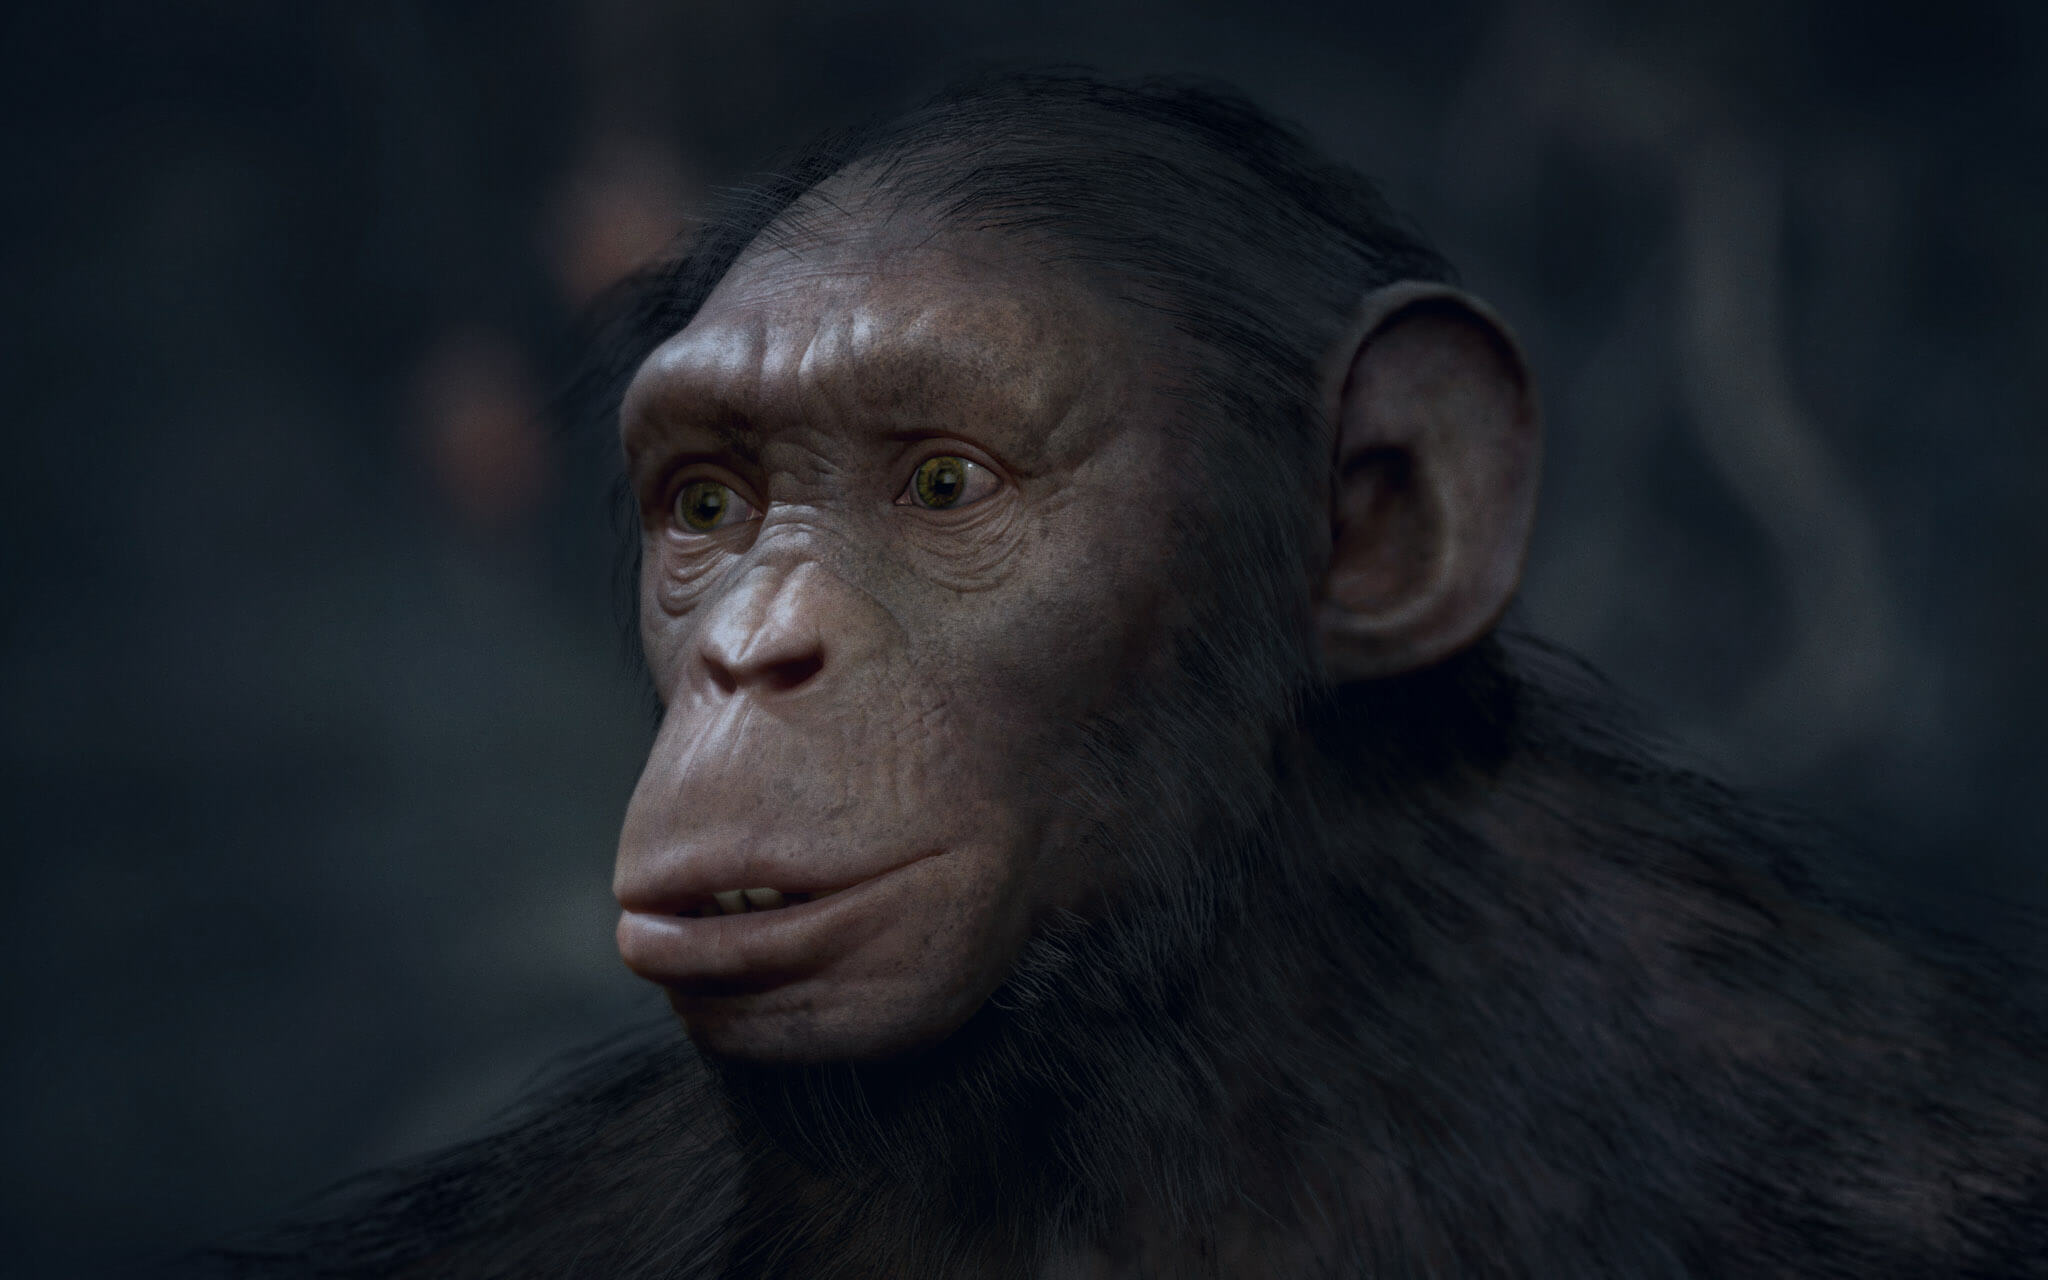 Planet of the Apes Last Frontier khan 1 - Latest Planet of the Apes: Last Frontier Focuses on Protagonist Khan